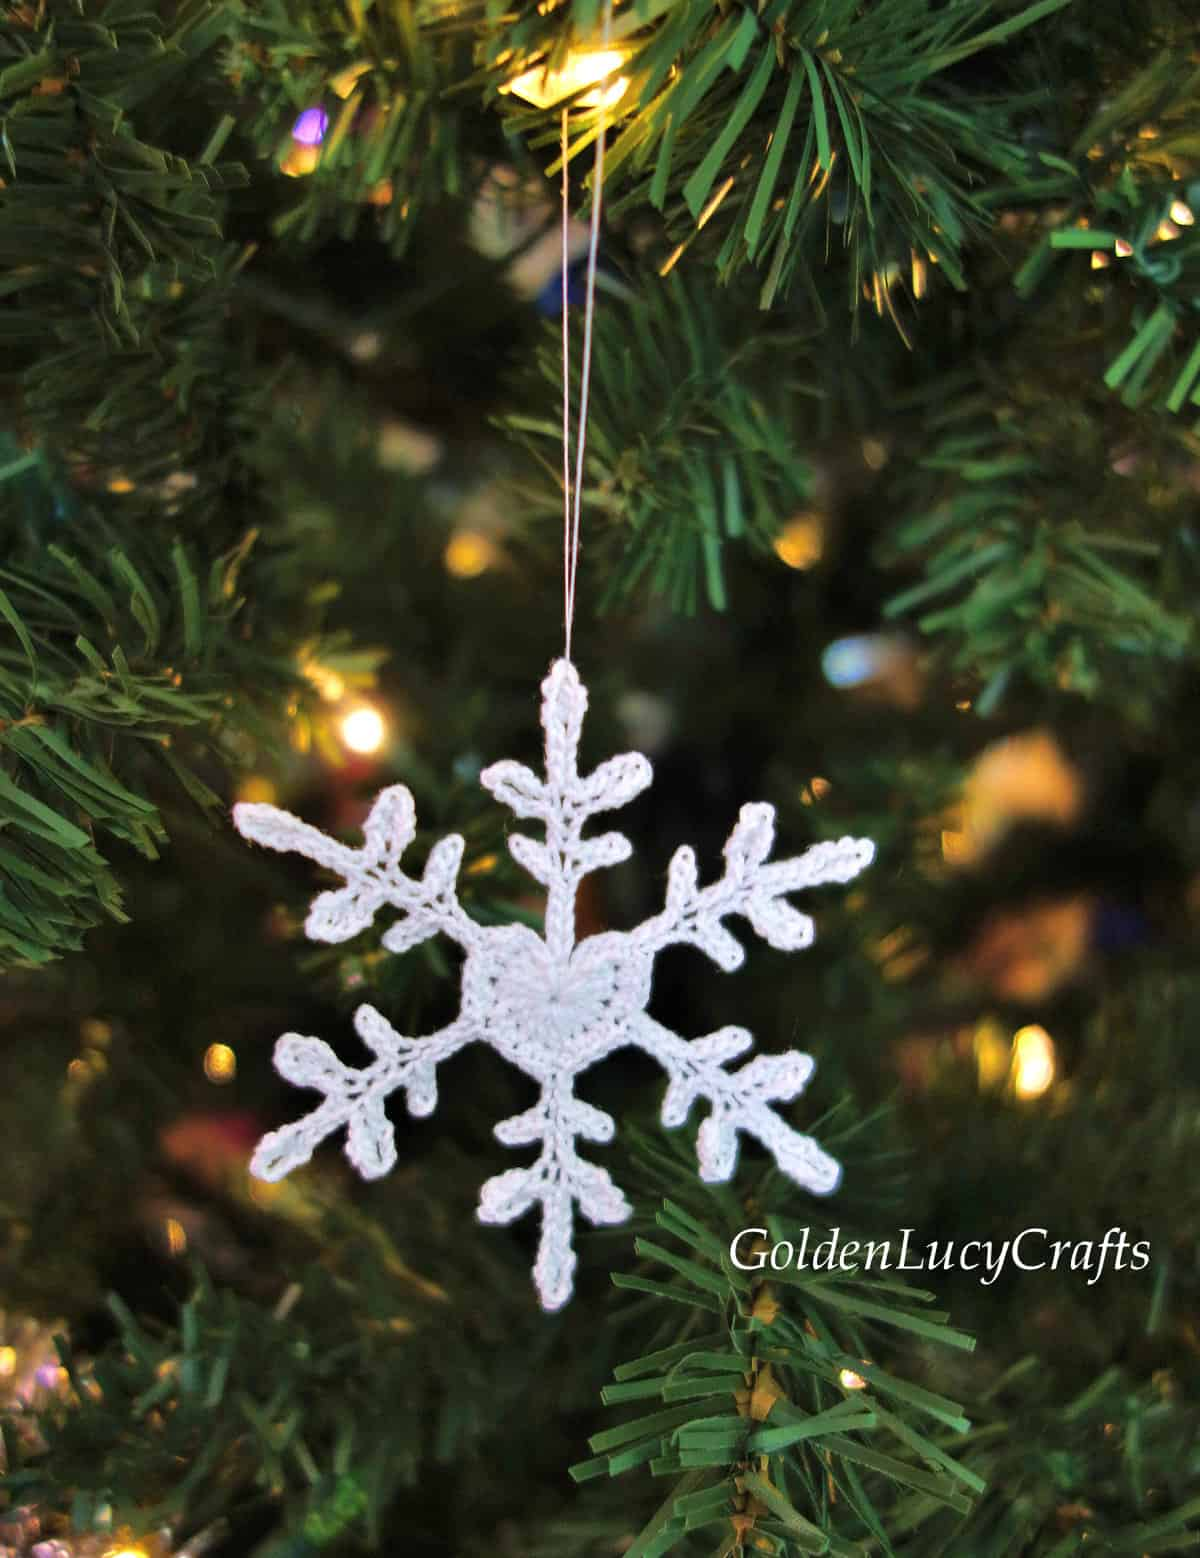 Crochet heart snowflake hanging on the Christmas tree.